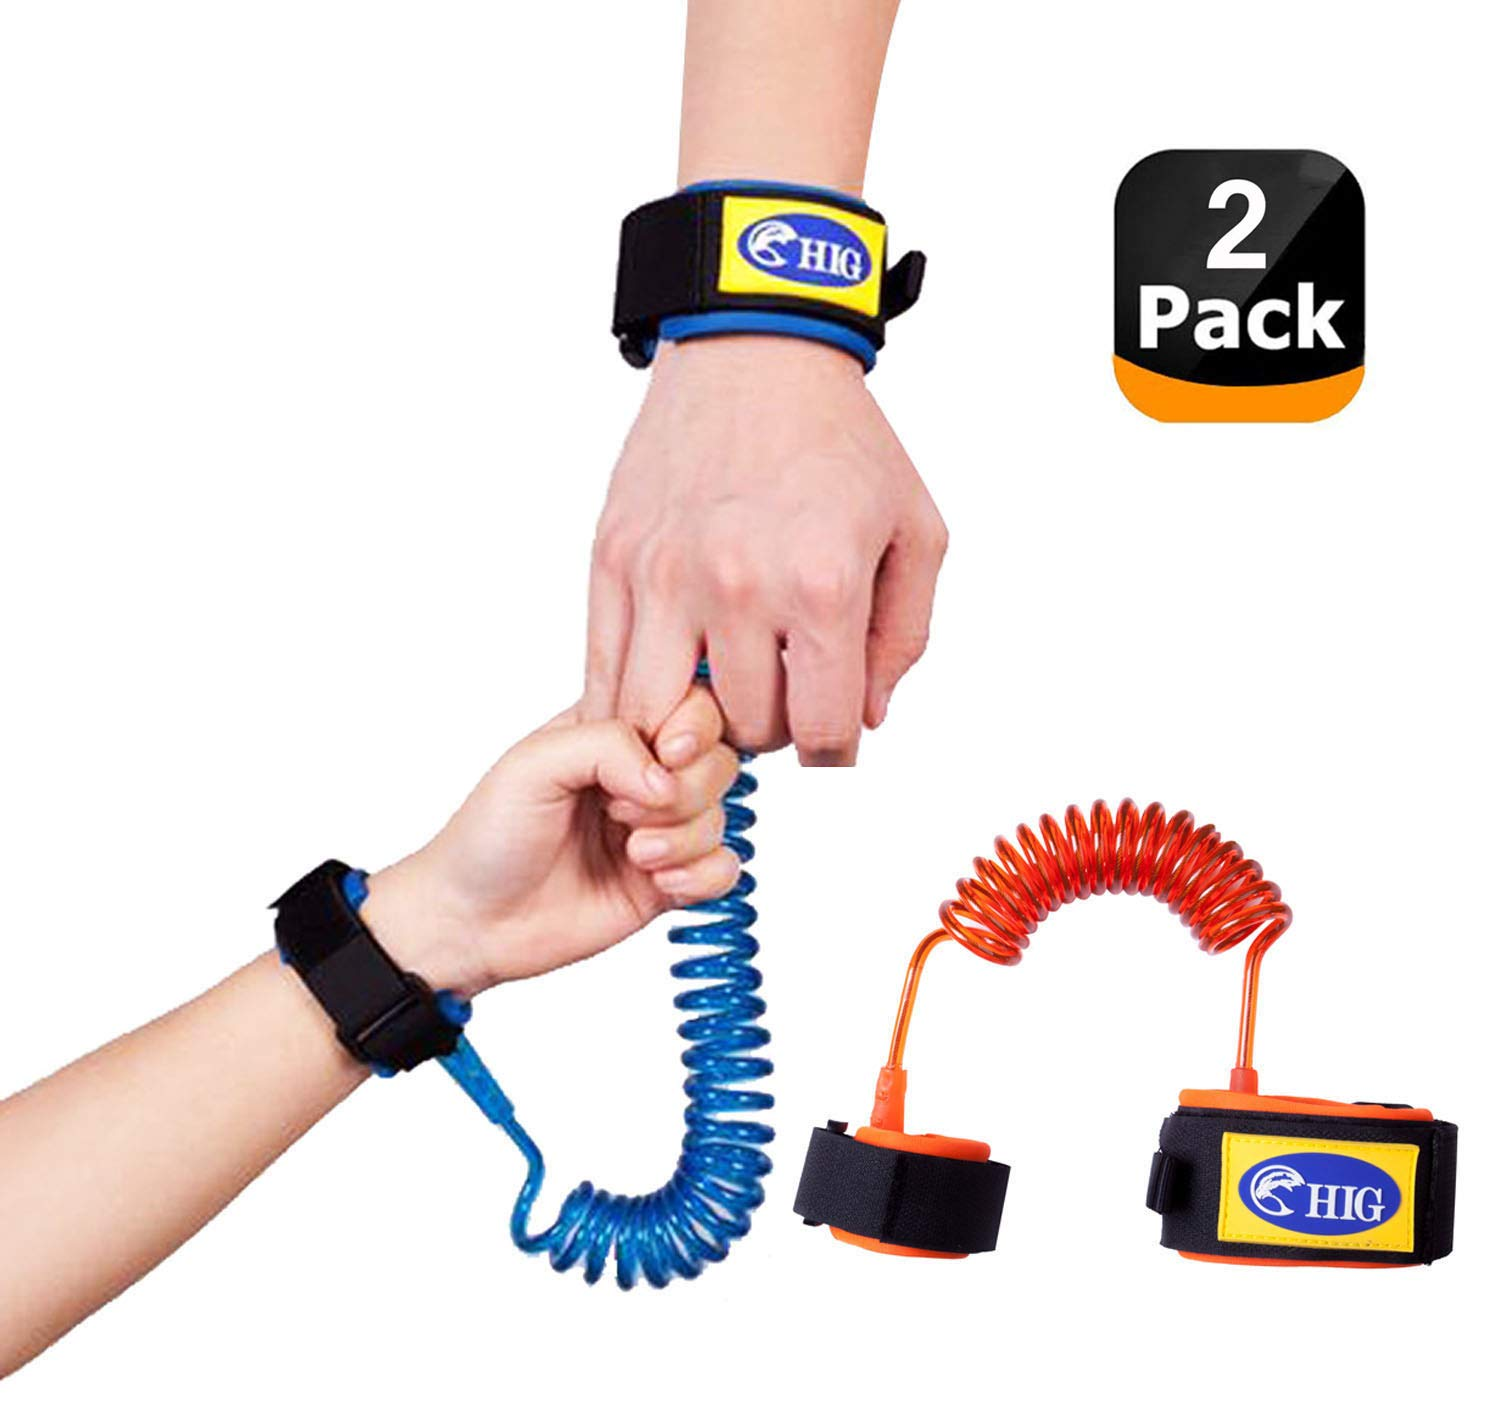 HIG Toddler Leash Anti Lost Wrist Link Safety Kid Leash Harness for Toddlers,Kids & Babies, Toddler Wrist Harness Safety Wrist Leashes by HIG (Image #1)